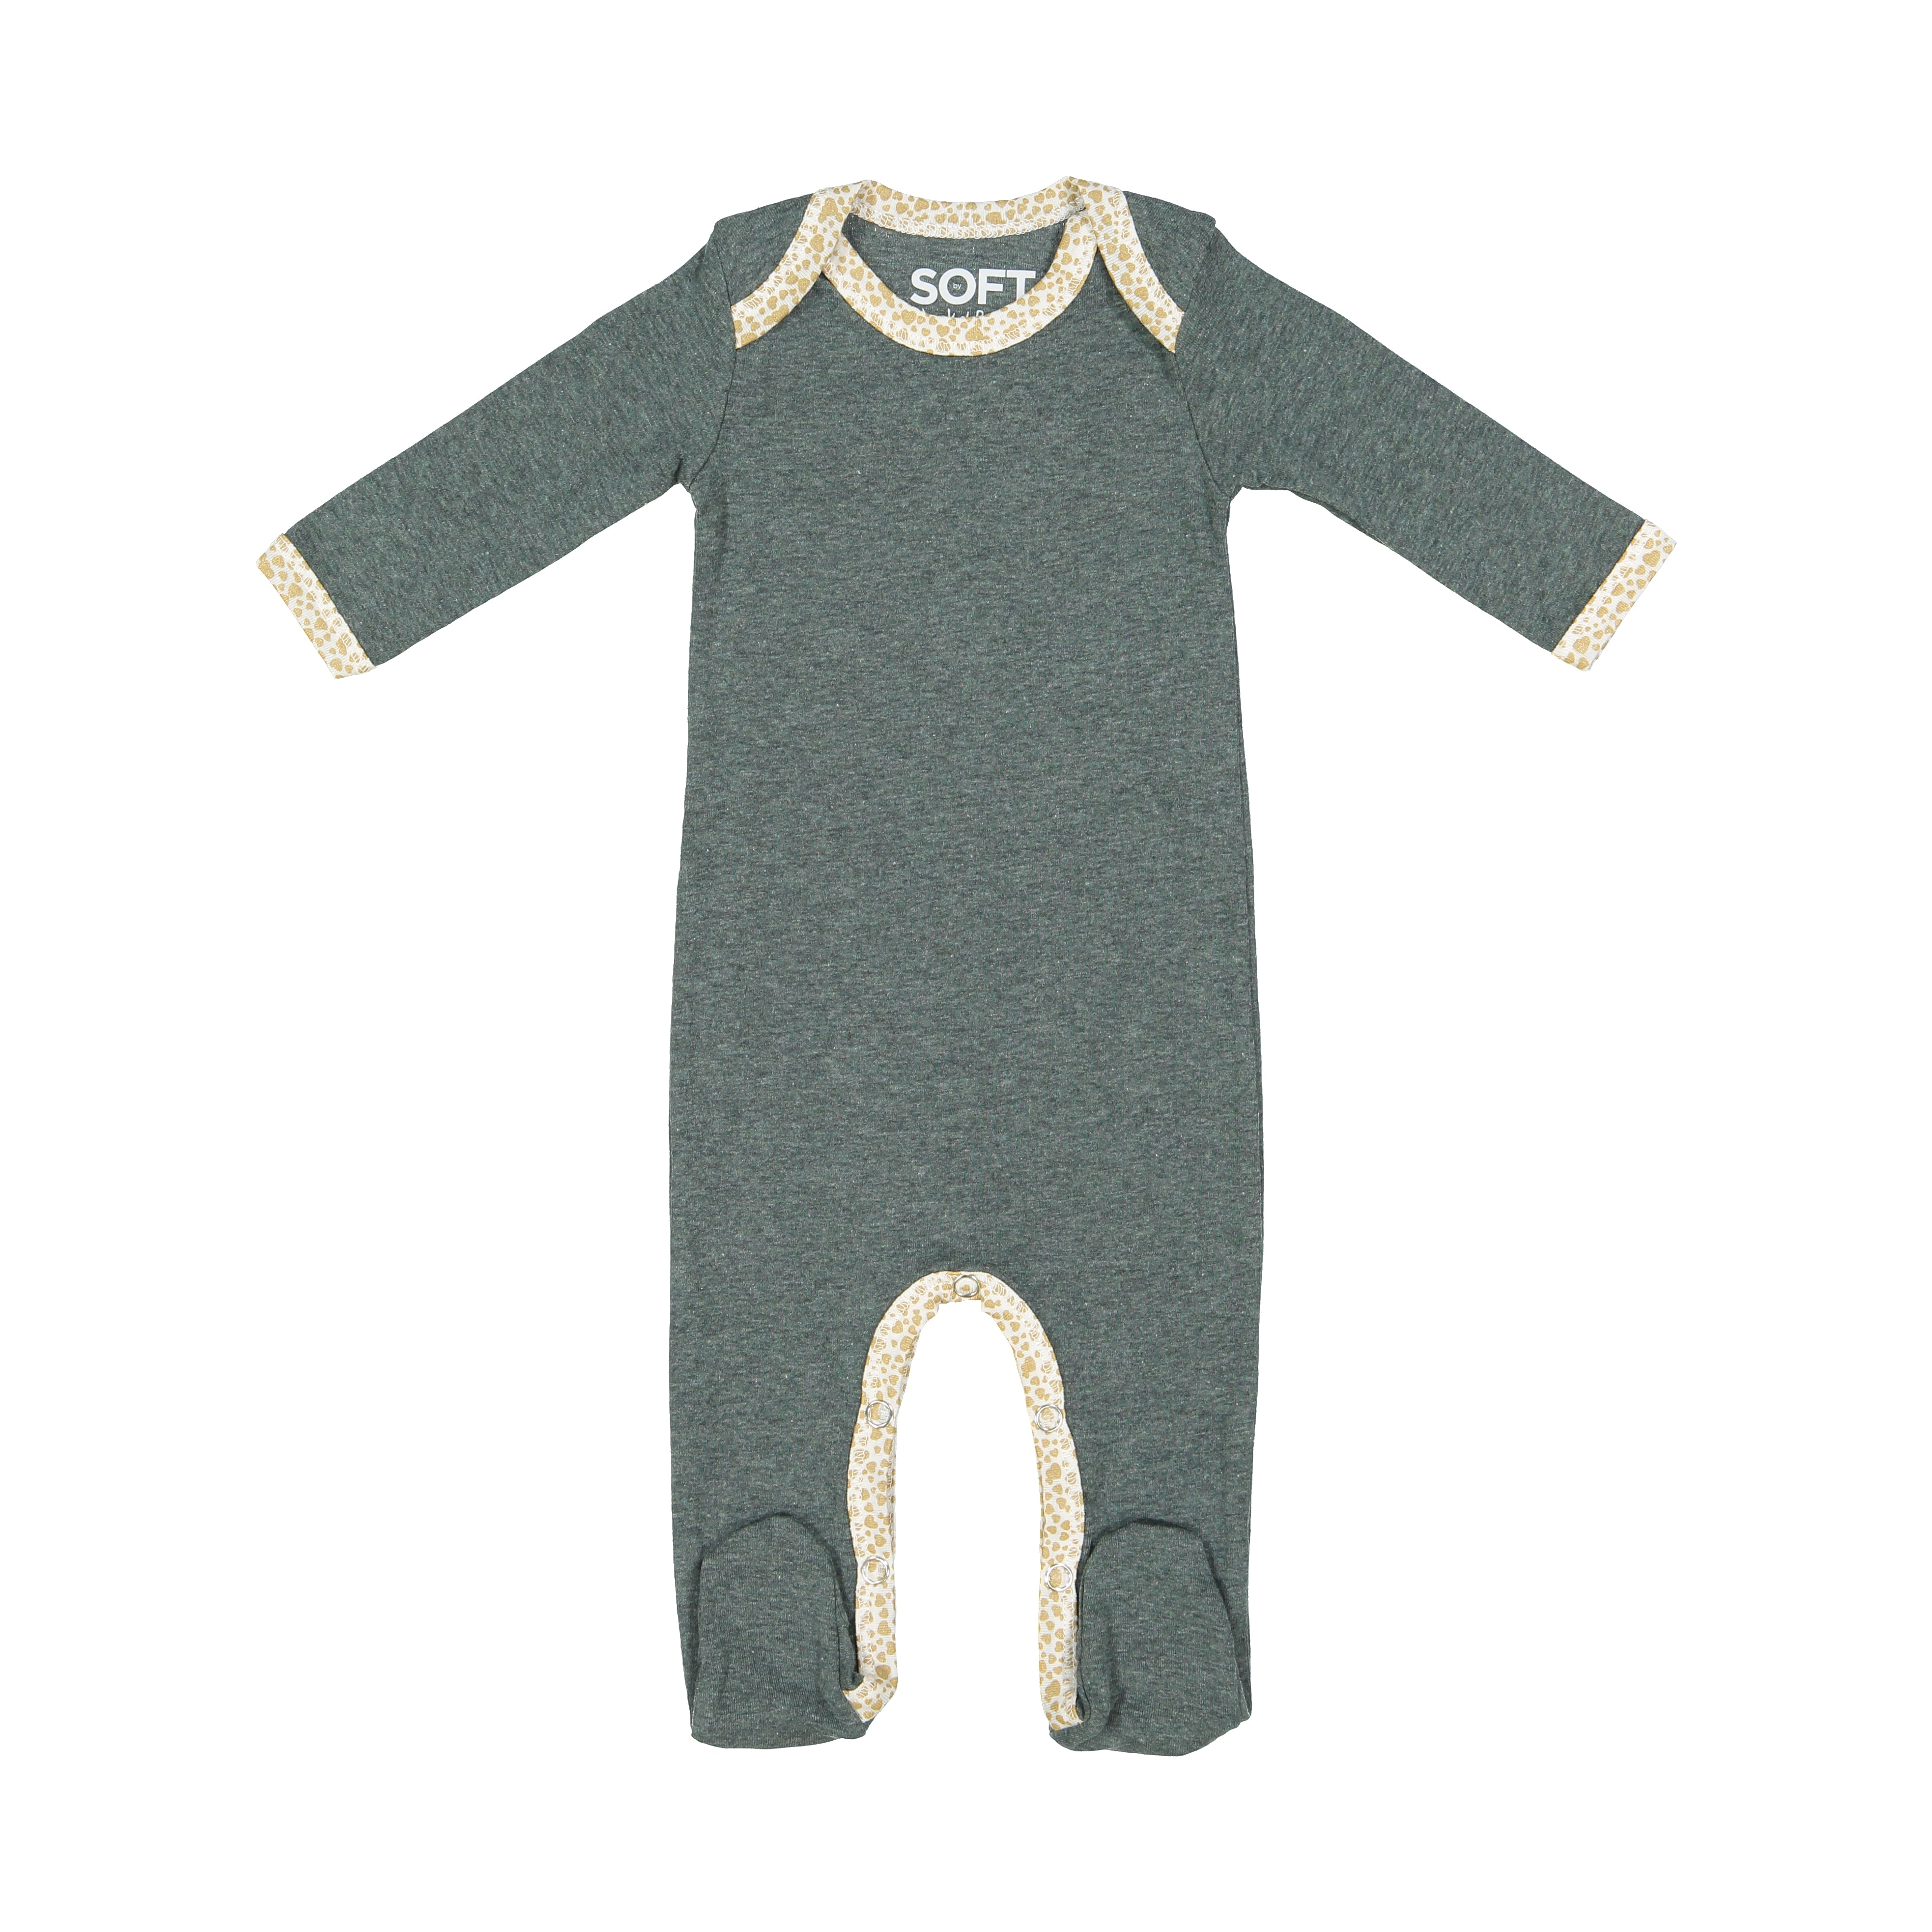 Jack and Becky SOFT Pine Heather Onesie with Gold Shimmer Hearts